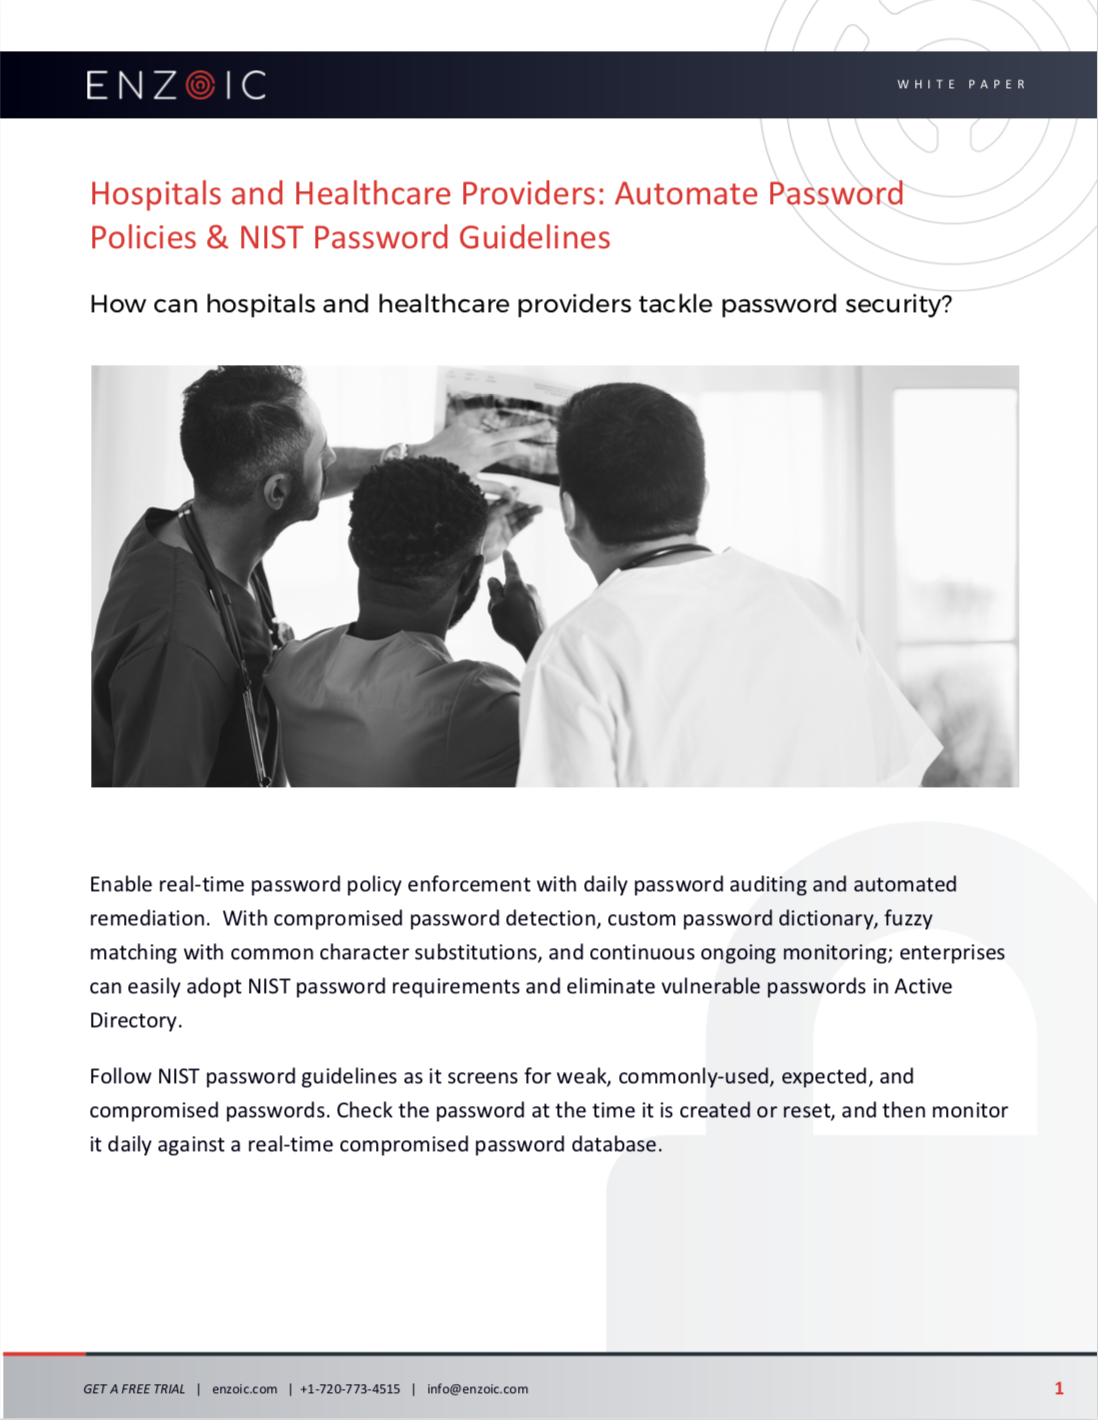 Hospitals Password Policy & NIST Password Guidelines